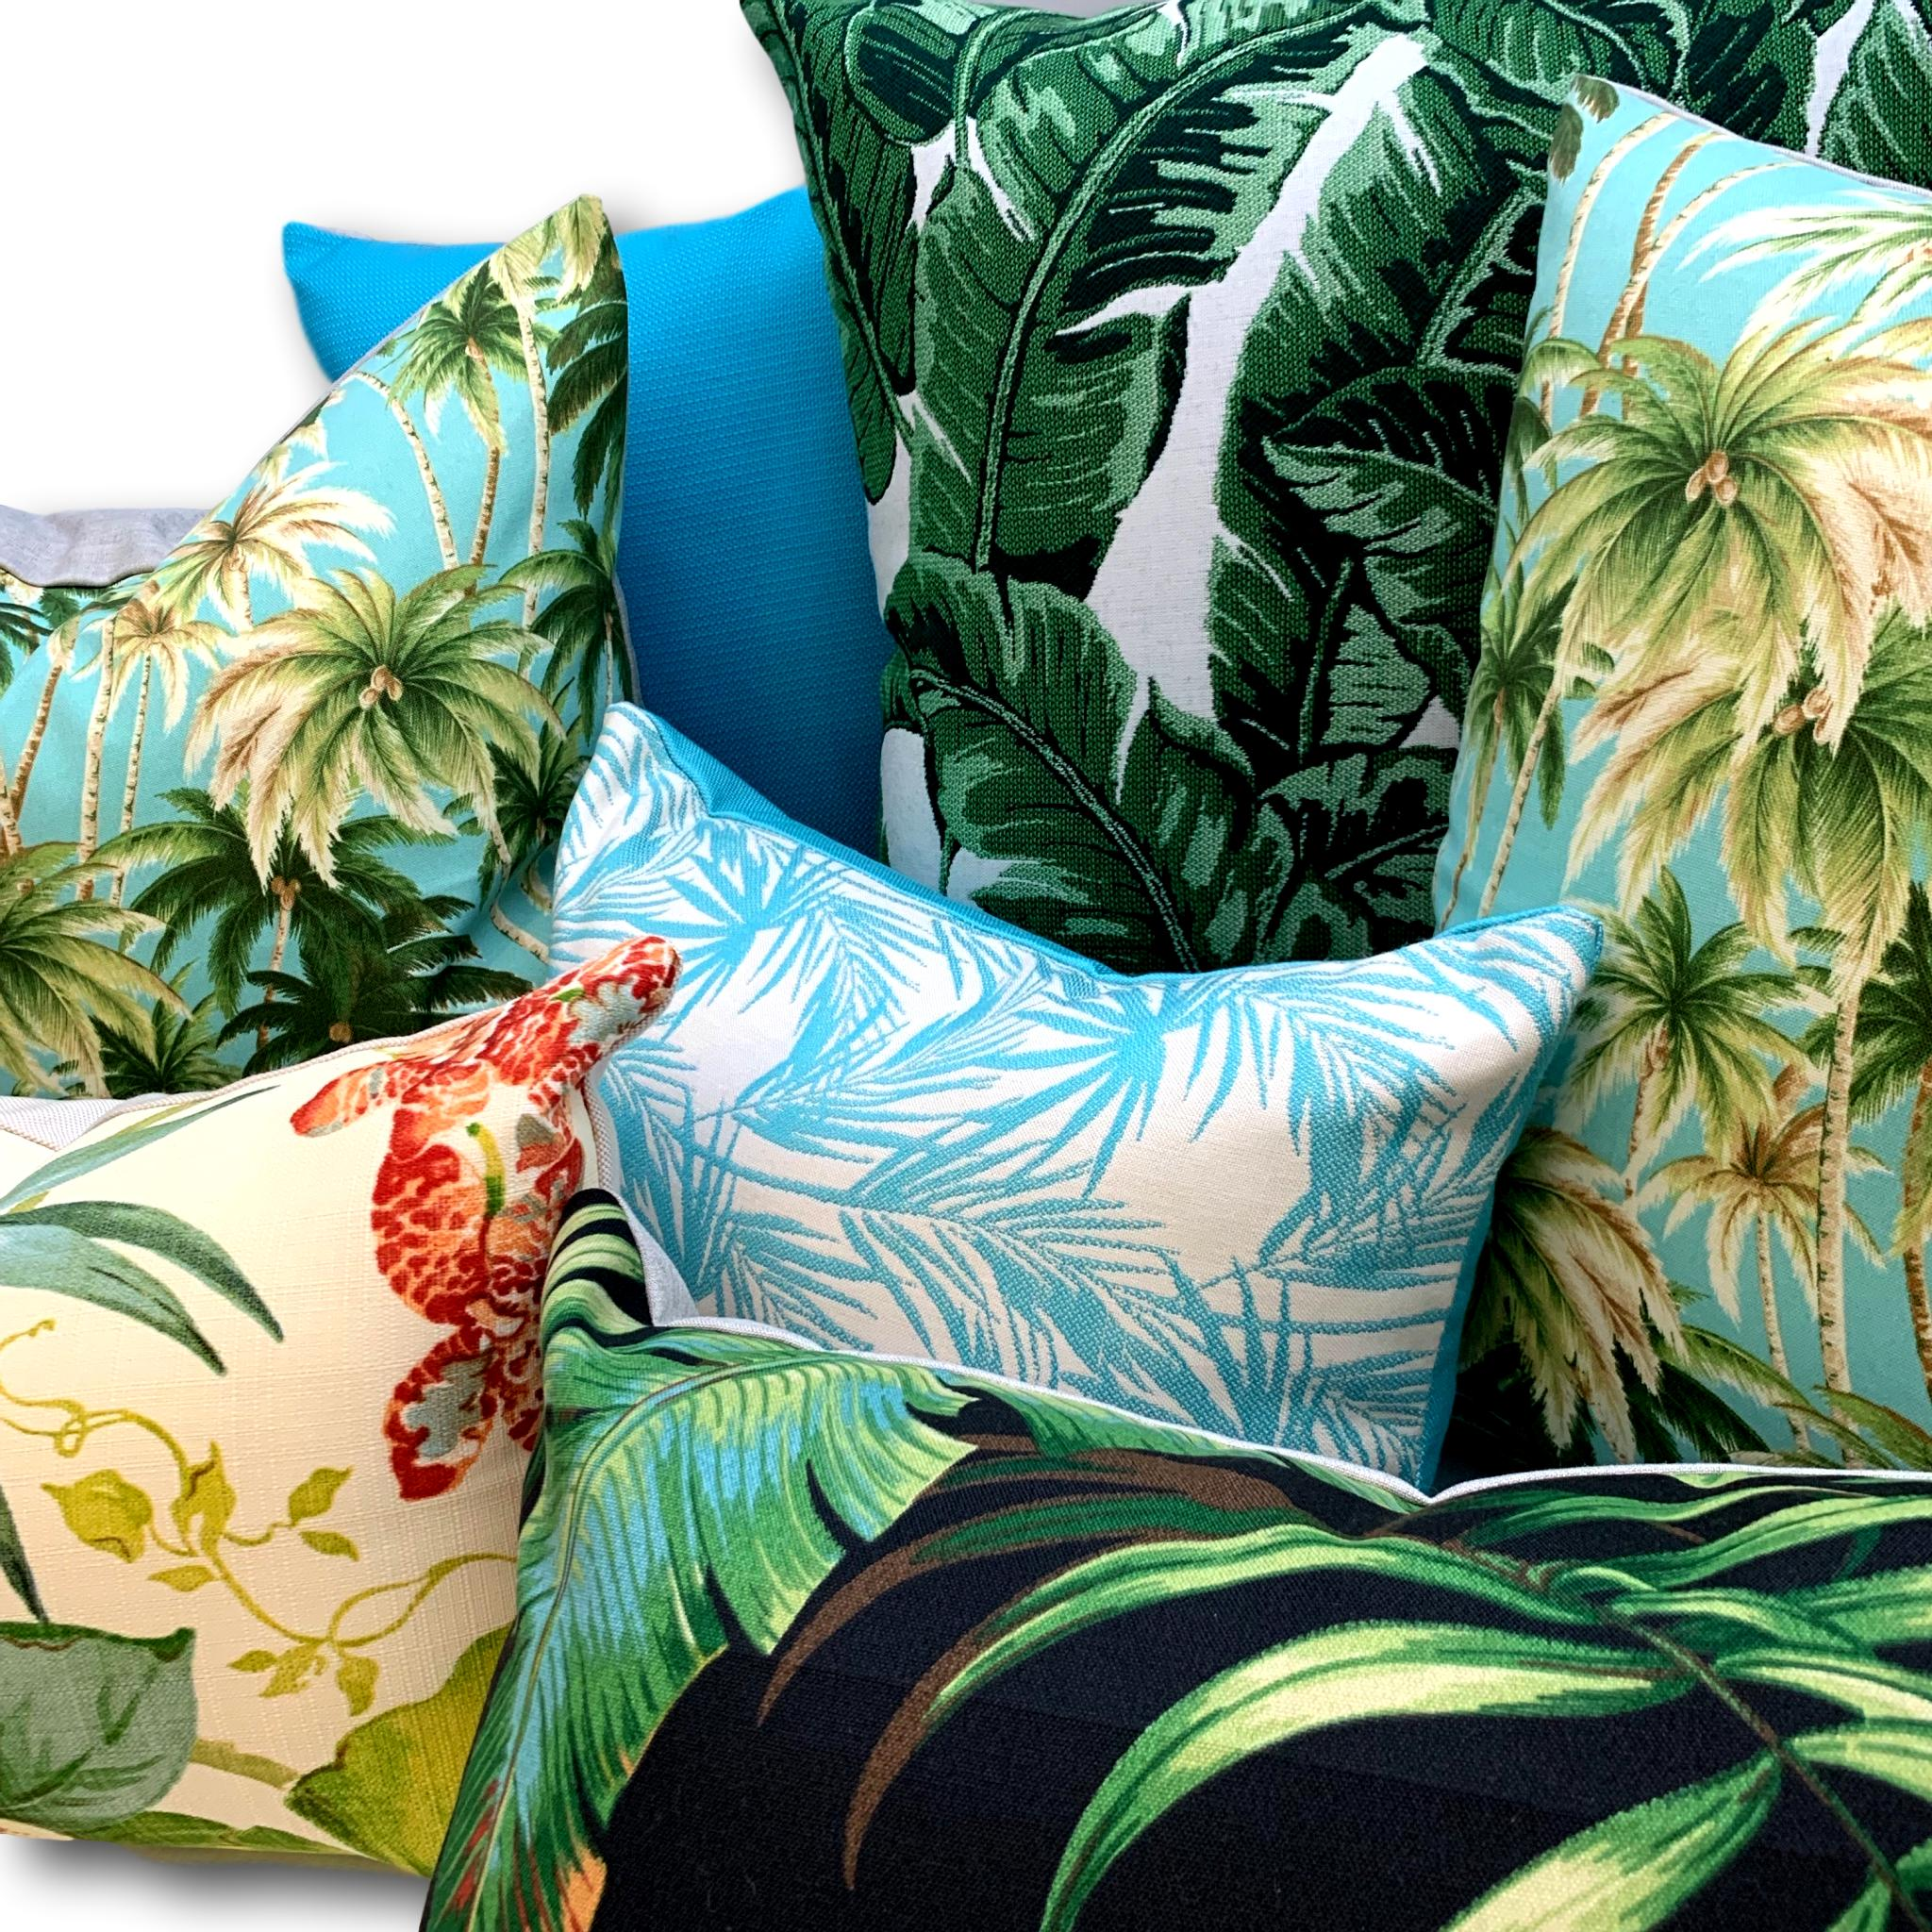 Sunbrella Tropics Jungle | NEW Just Arrived